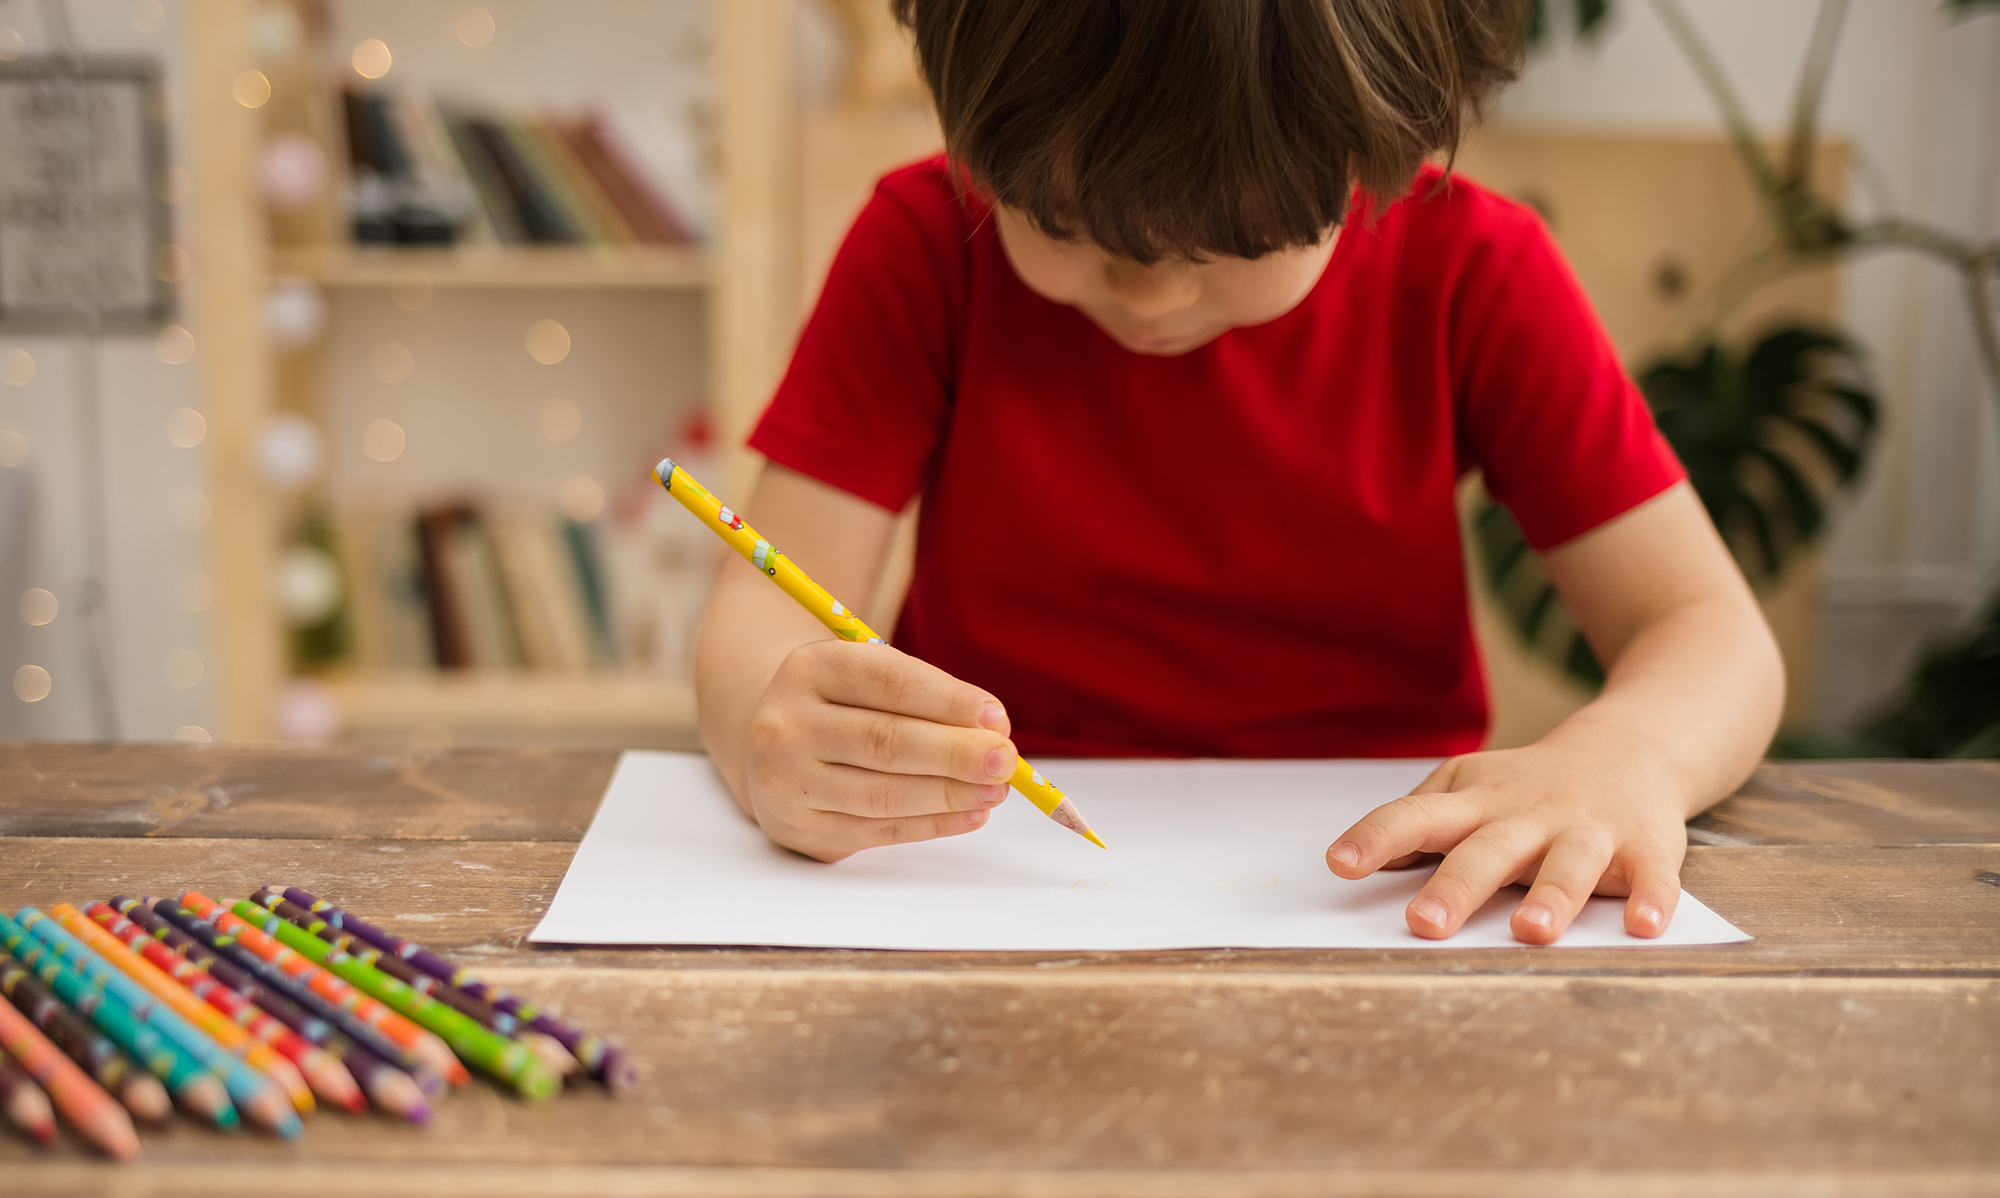 Toddler child practicing writing their name on a white piece of paper and colored pencil